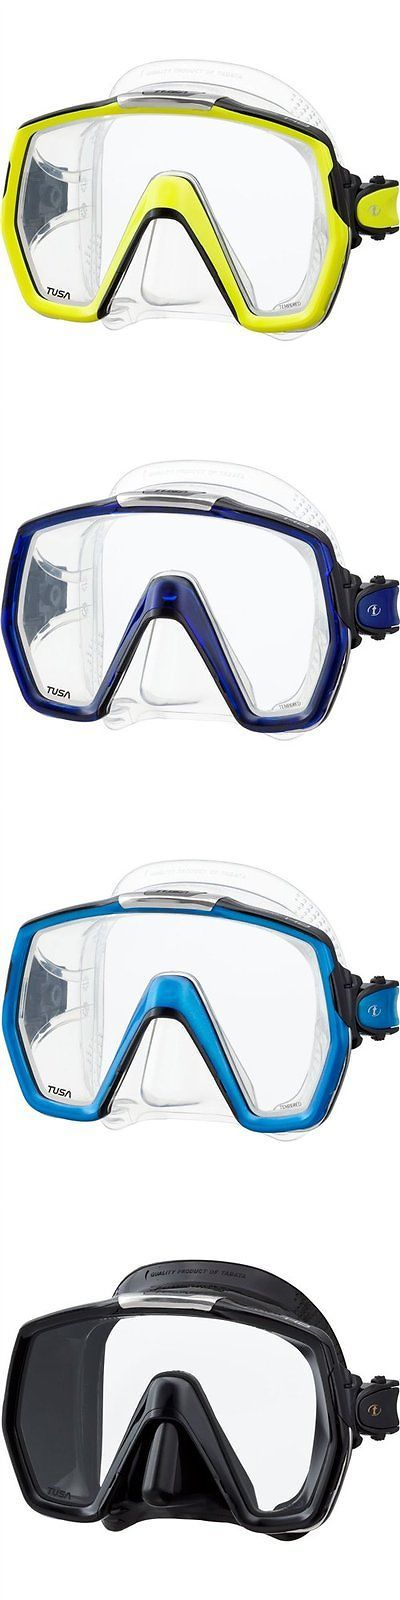 Masks 71161: Tusa M1001 Freedom Hd Scuba Diving Mask - Flash Yellow -> BUY IT NOW ONLY: $71.2 on eBay!